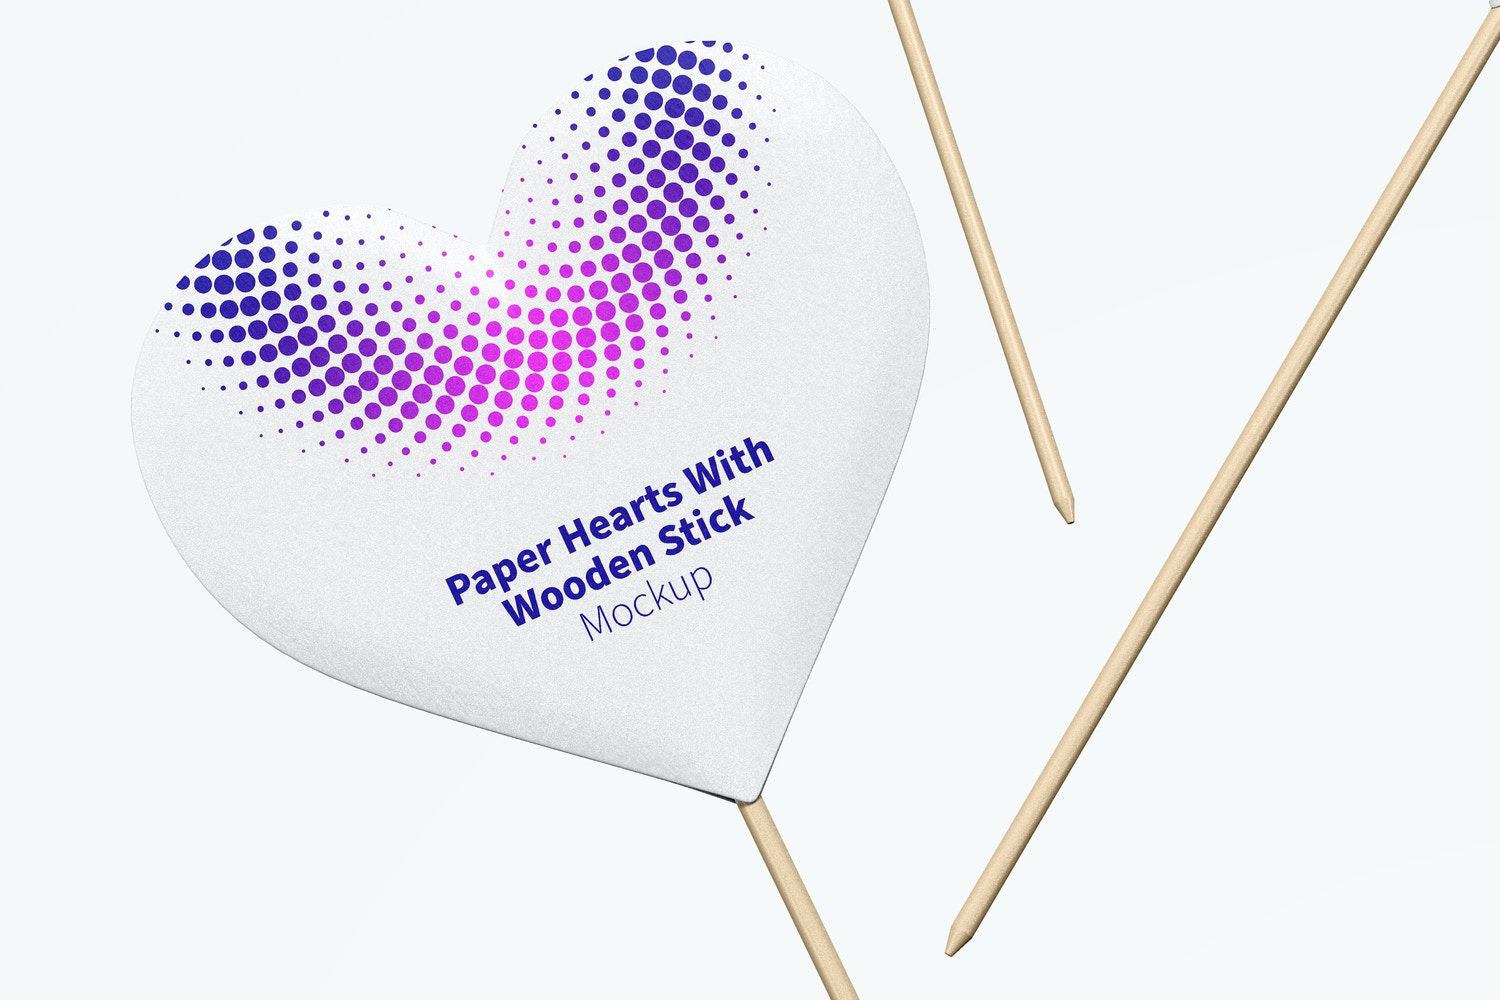 Paper Hearts With Wooden Stick Set Mockup, Falling